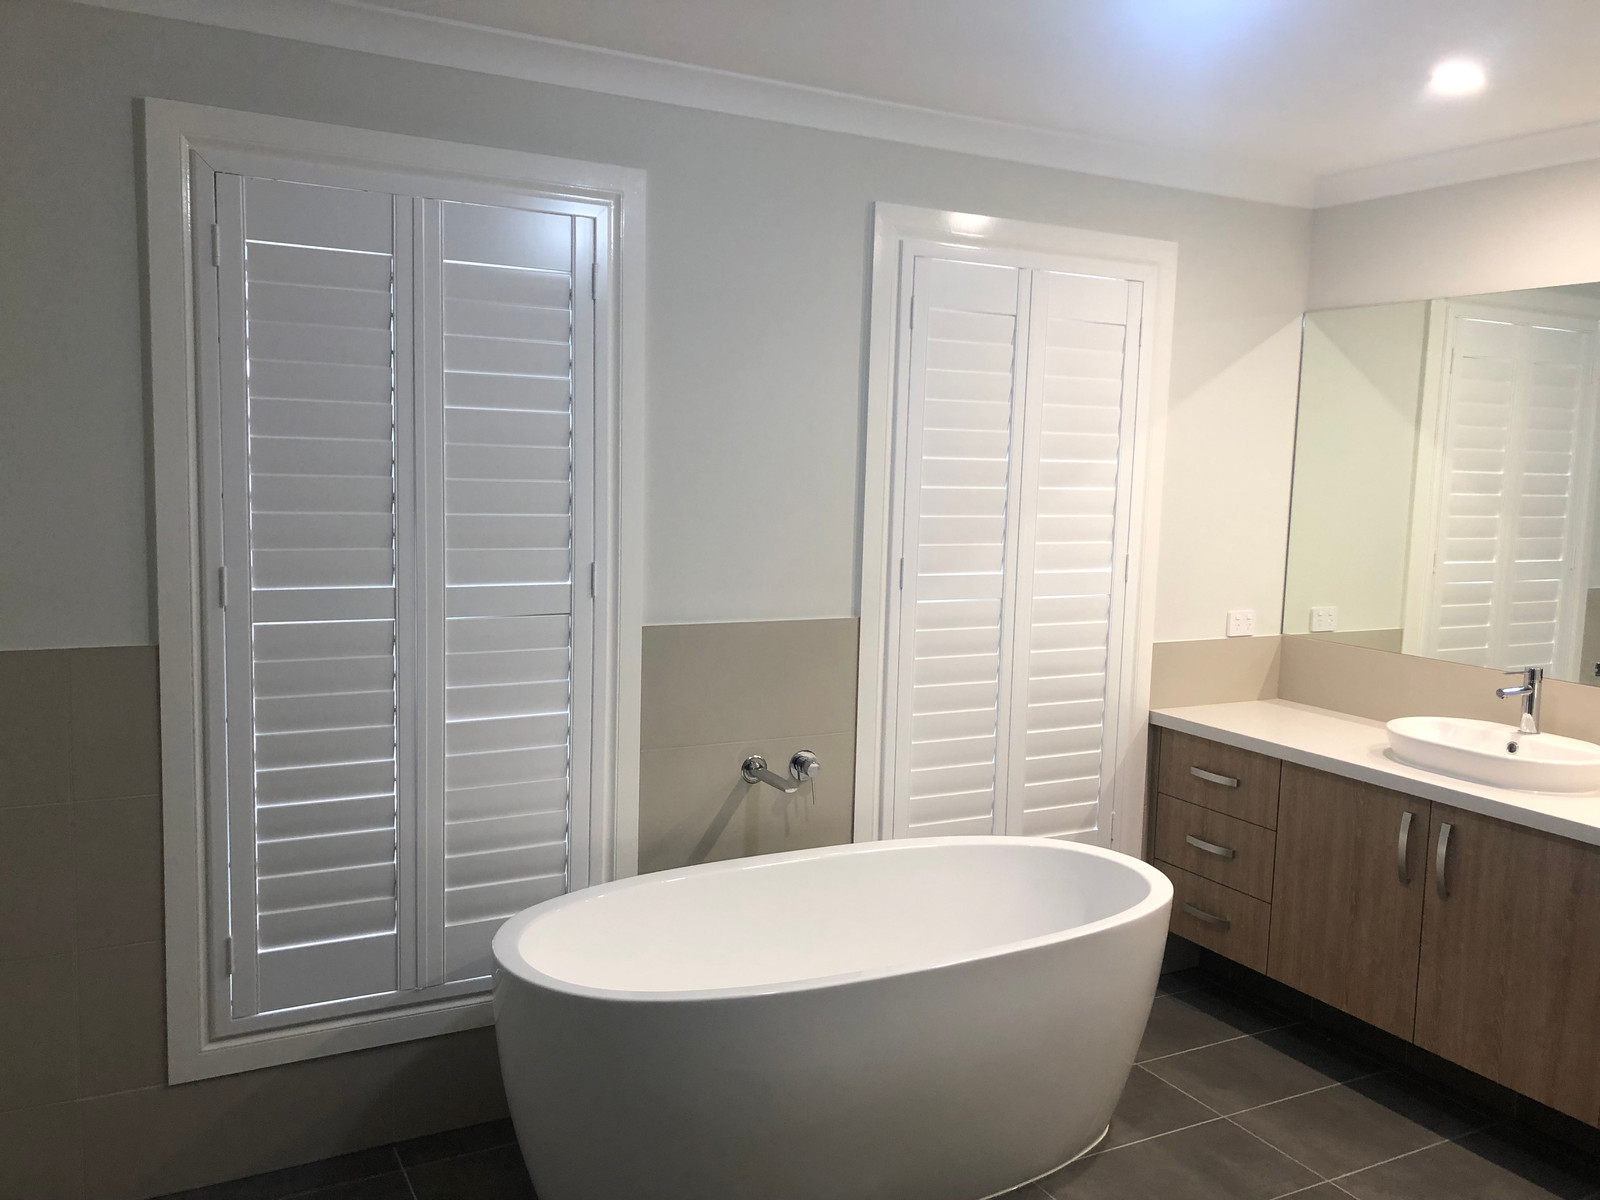 Plantation Shutter In Bathroom And Wc To